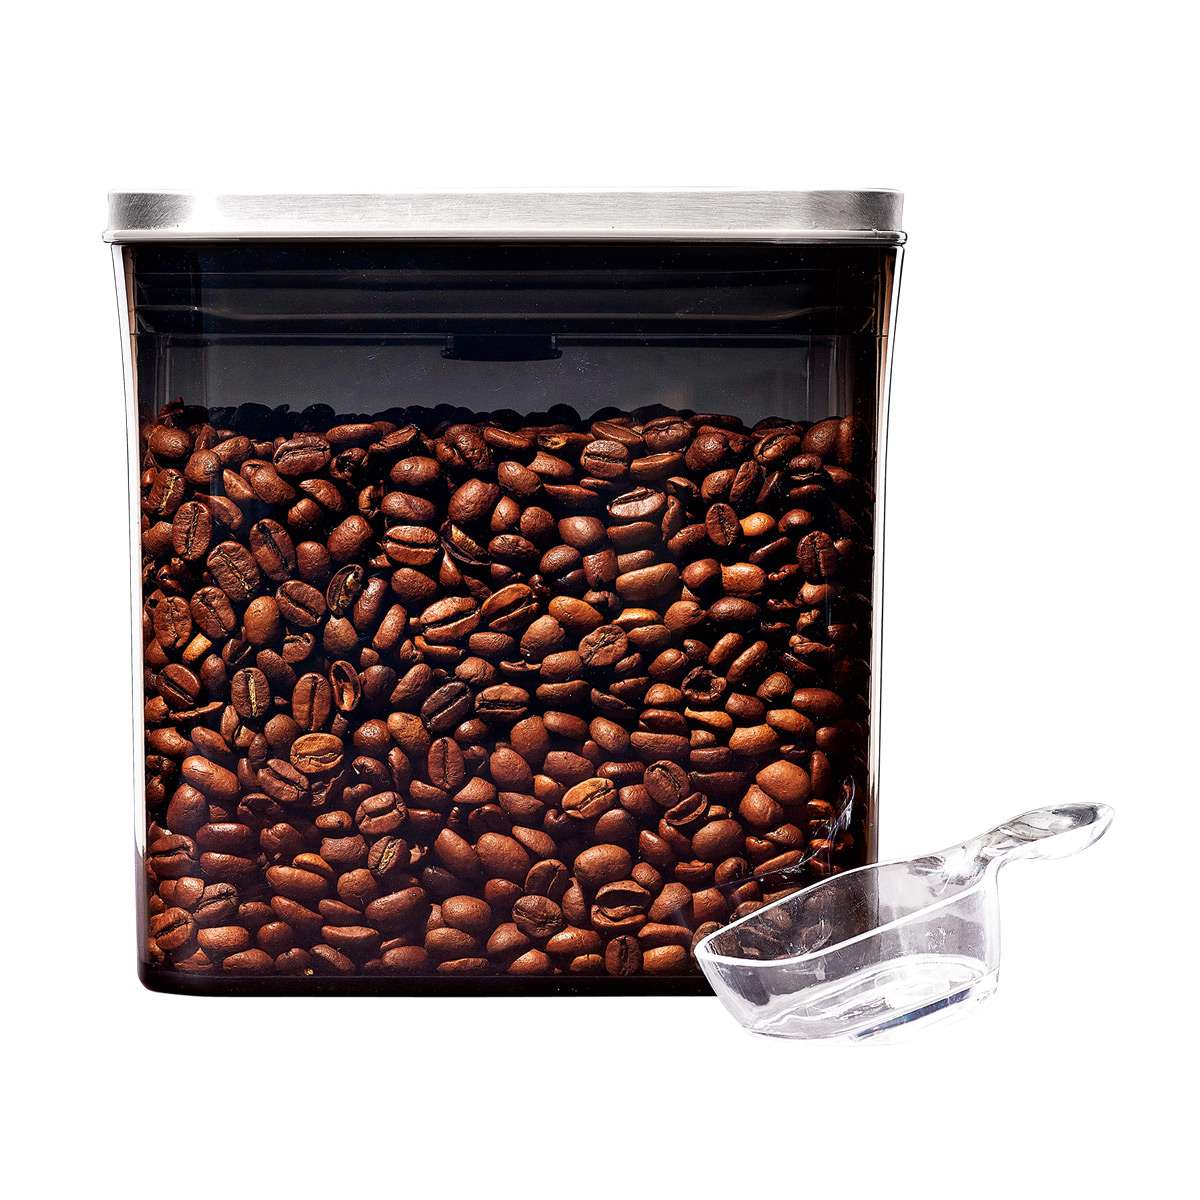 OXO Steel Coffee POP Container (1.7 Qt) with Scoop